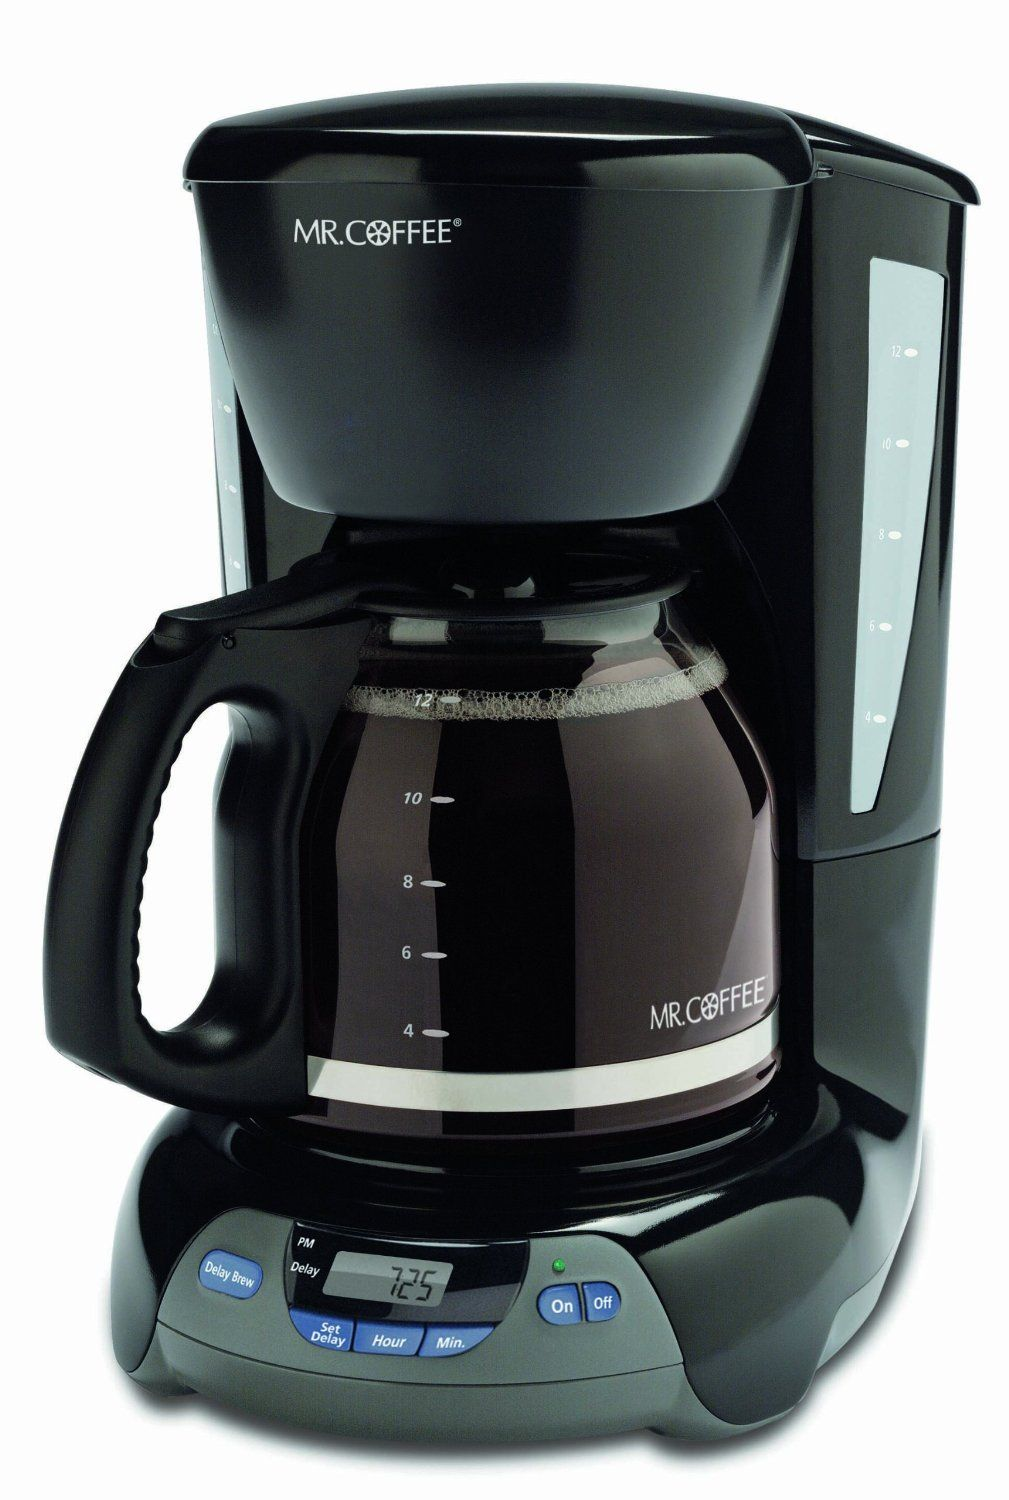 Mr. Coffee VBX23 12Cup Programmable Coffeemaker, Black